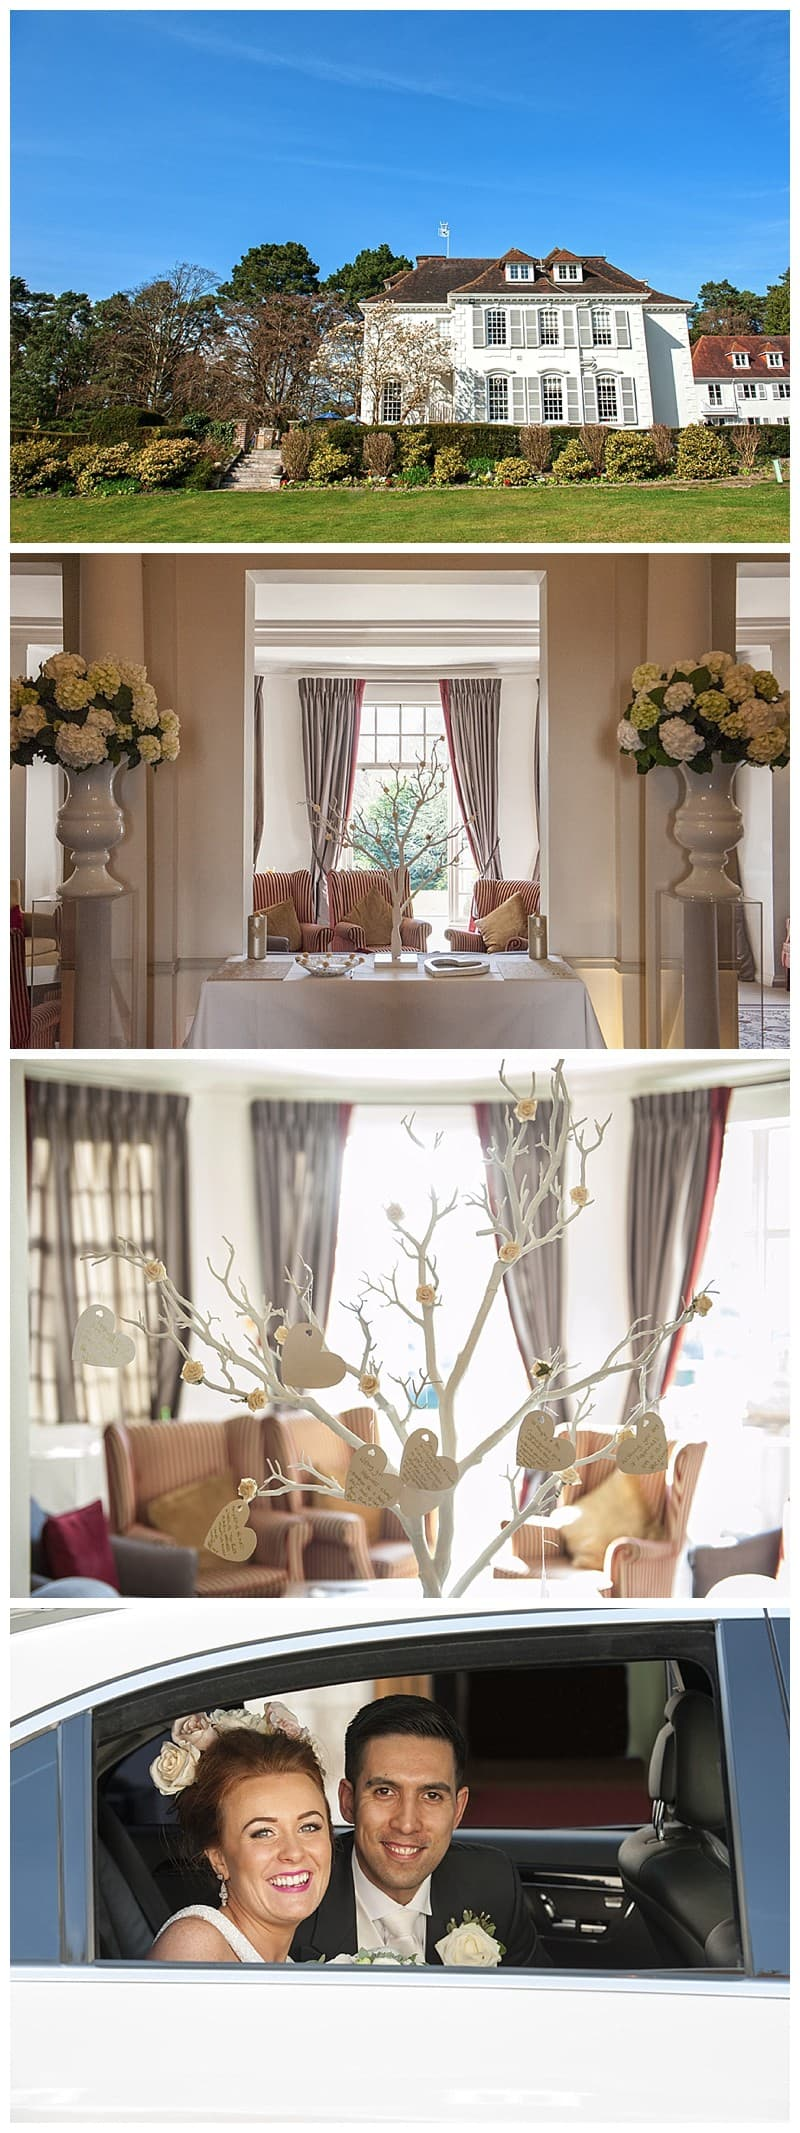 Stuart & Hayley De Vere's Hotel, Surrey Wedding, Benjamin Wetherall Photography | London Wedding Photography0013.1